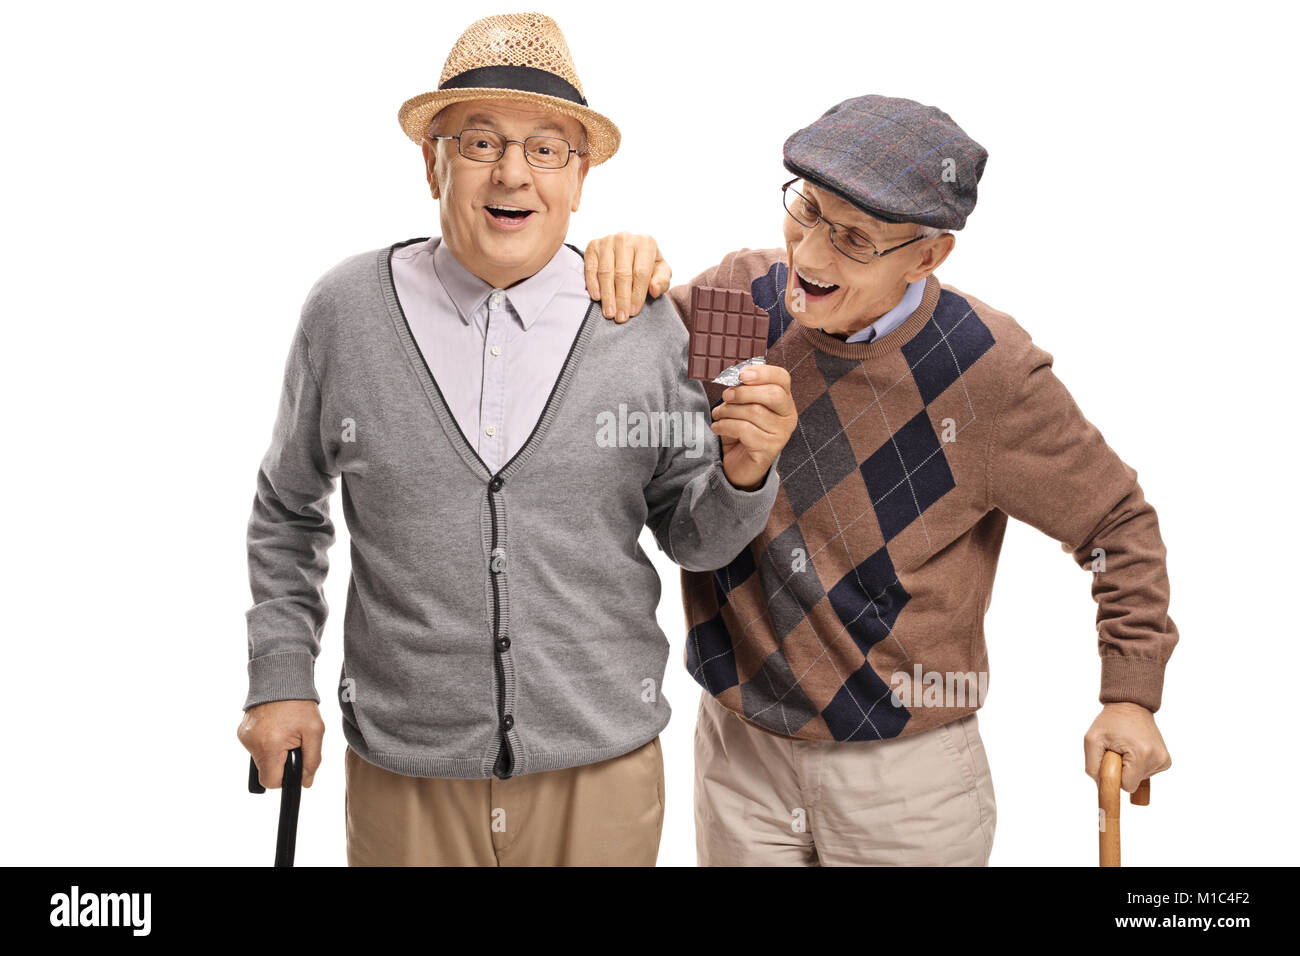 Elderly man sneaking up on another elderly man to grab a bite of his chocolate isolated on white background - Stock Image